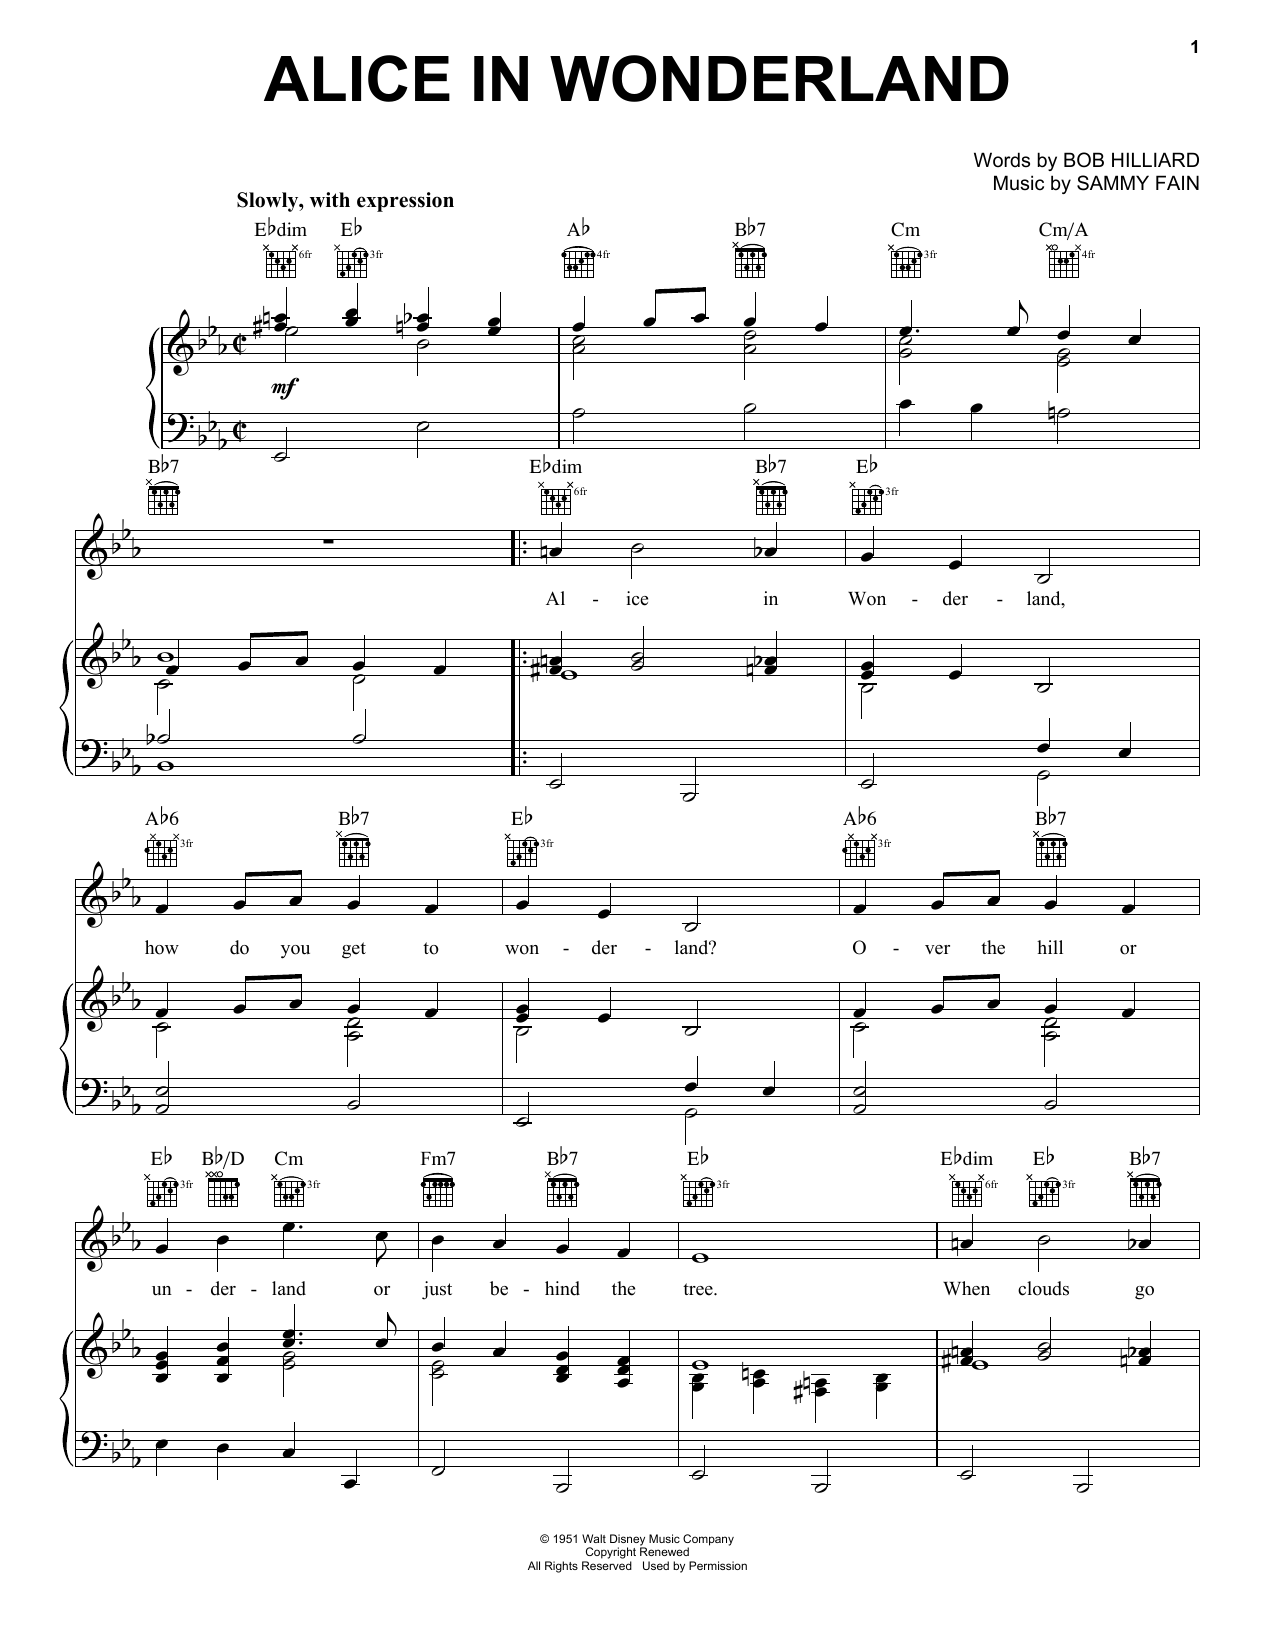 Alice In Wonderland sheet music for voice, piano or guitar by Sammy Fain